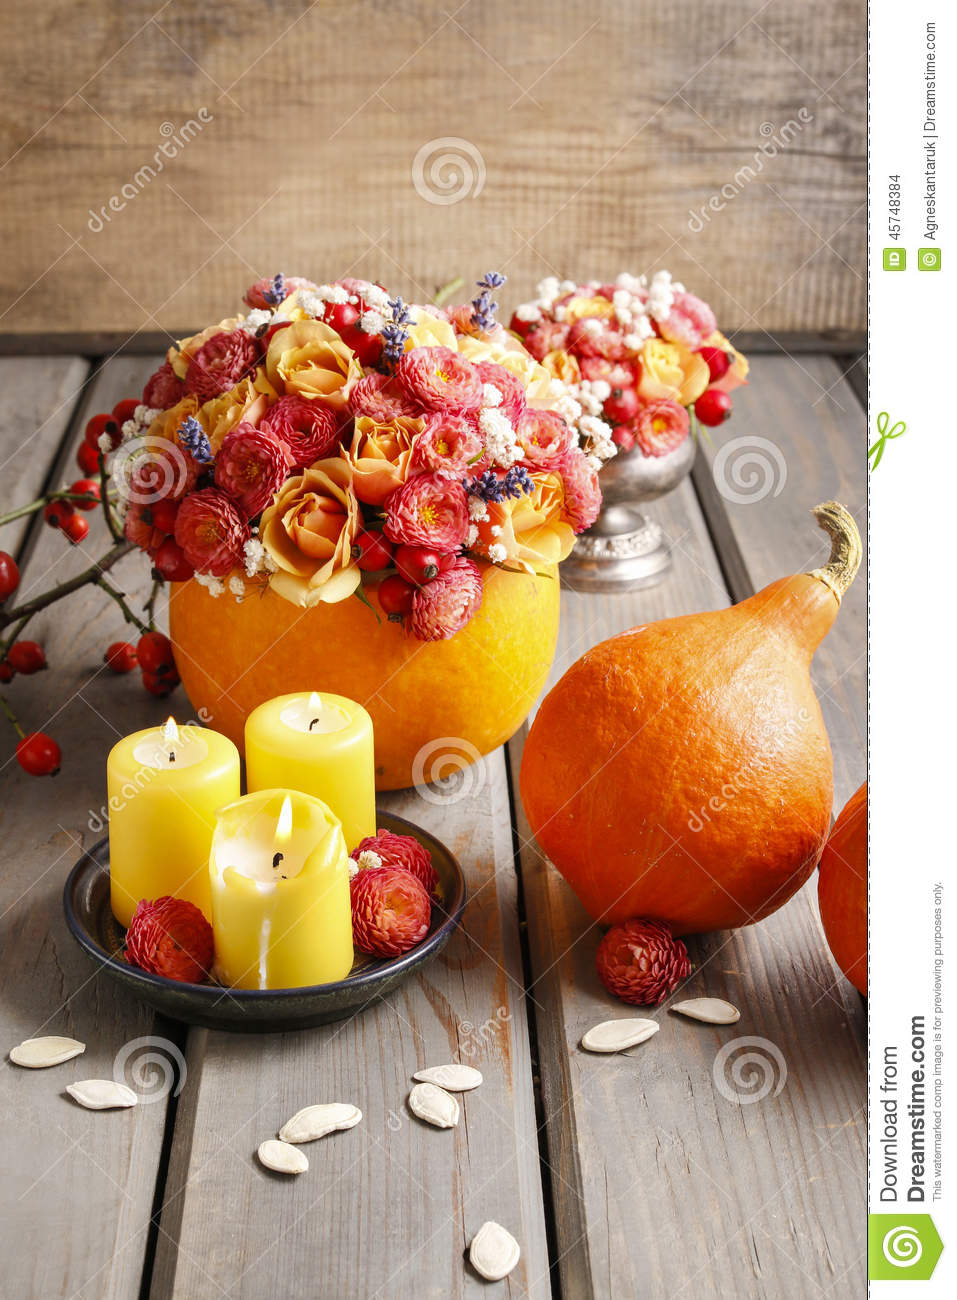 Autumn table decoration bouquet in pumpkin and candles stock photo image 45748384 - Pumpkin decorating ideas autumnal decor ...